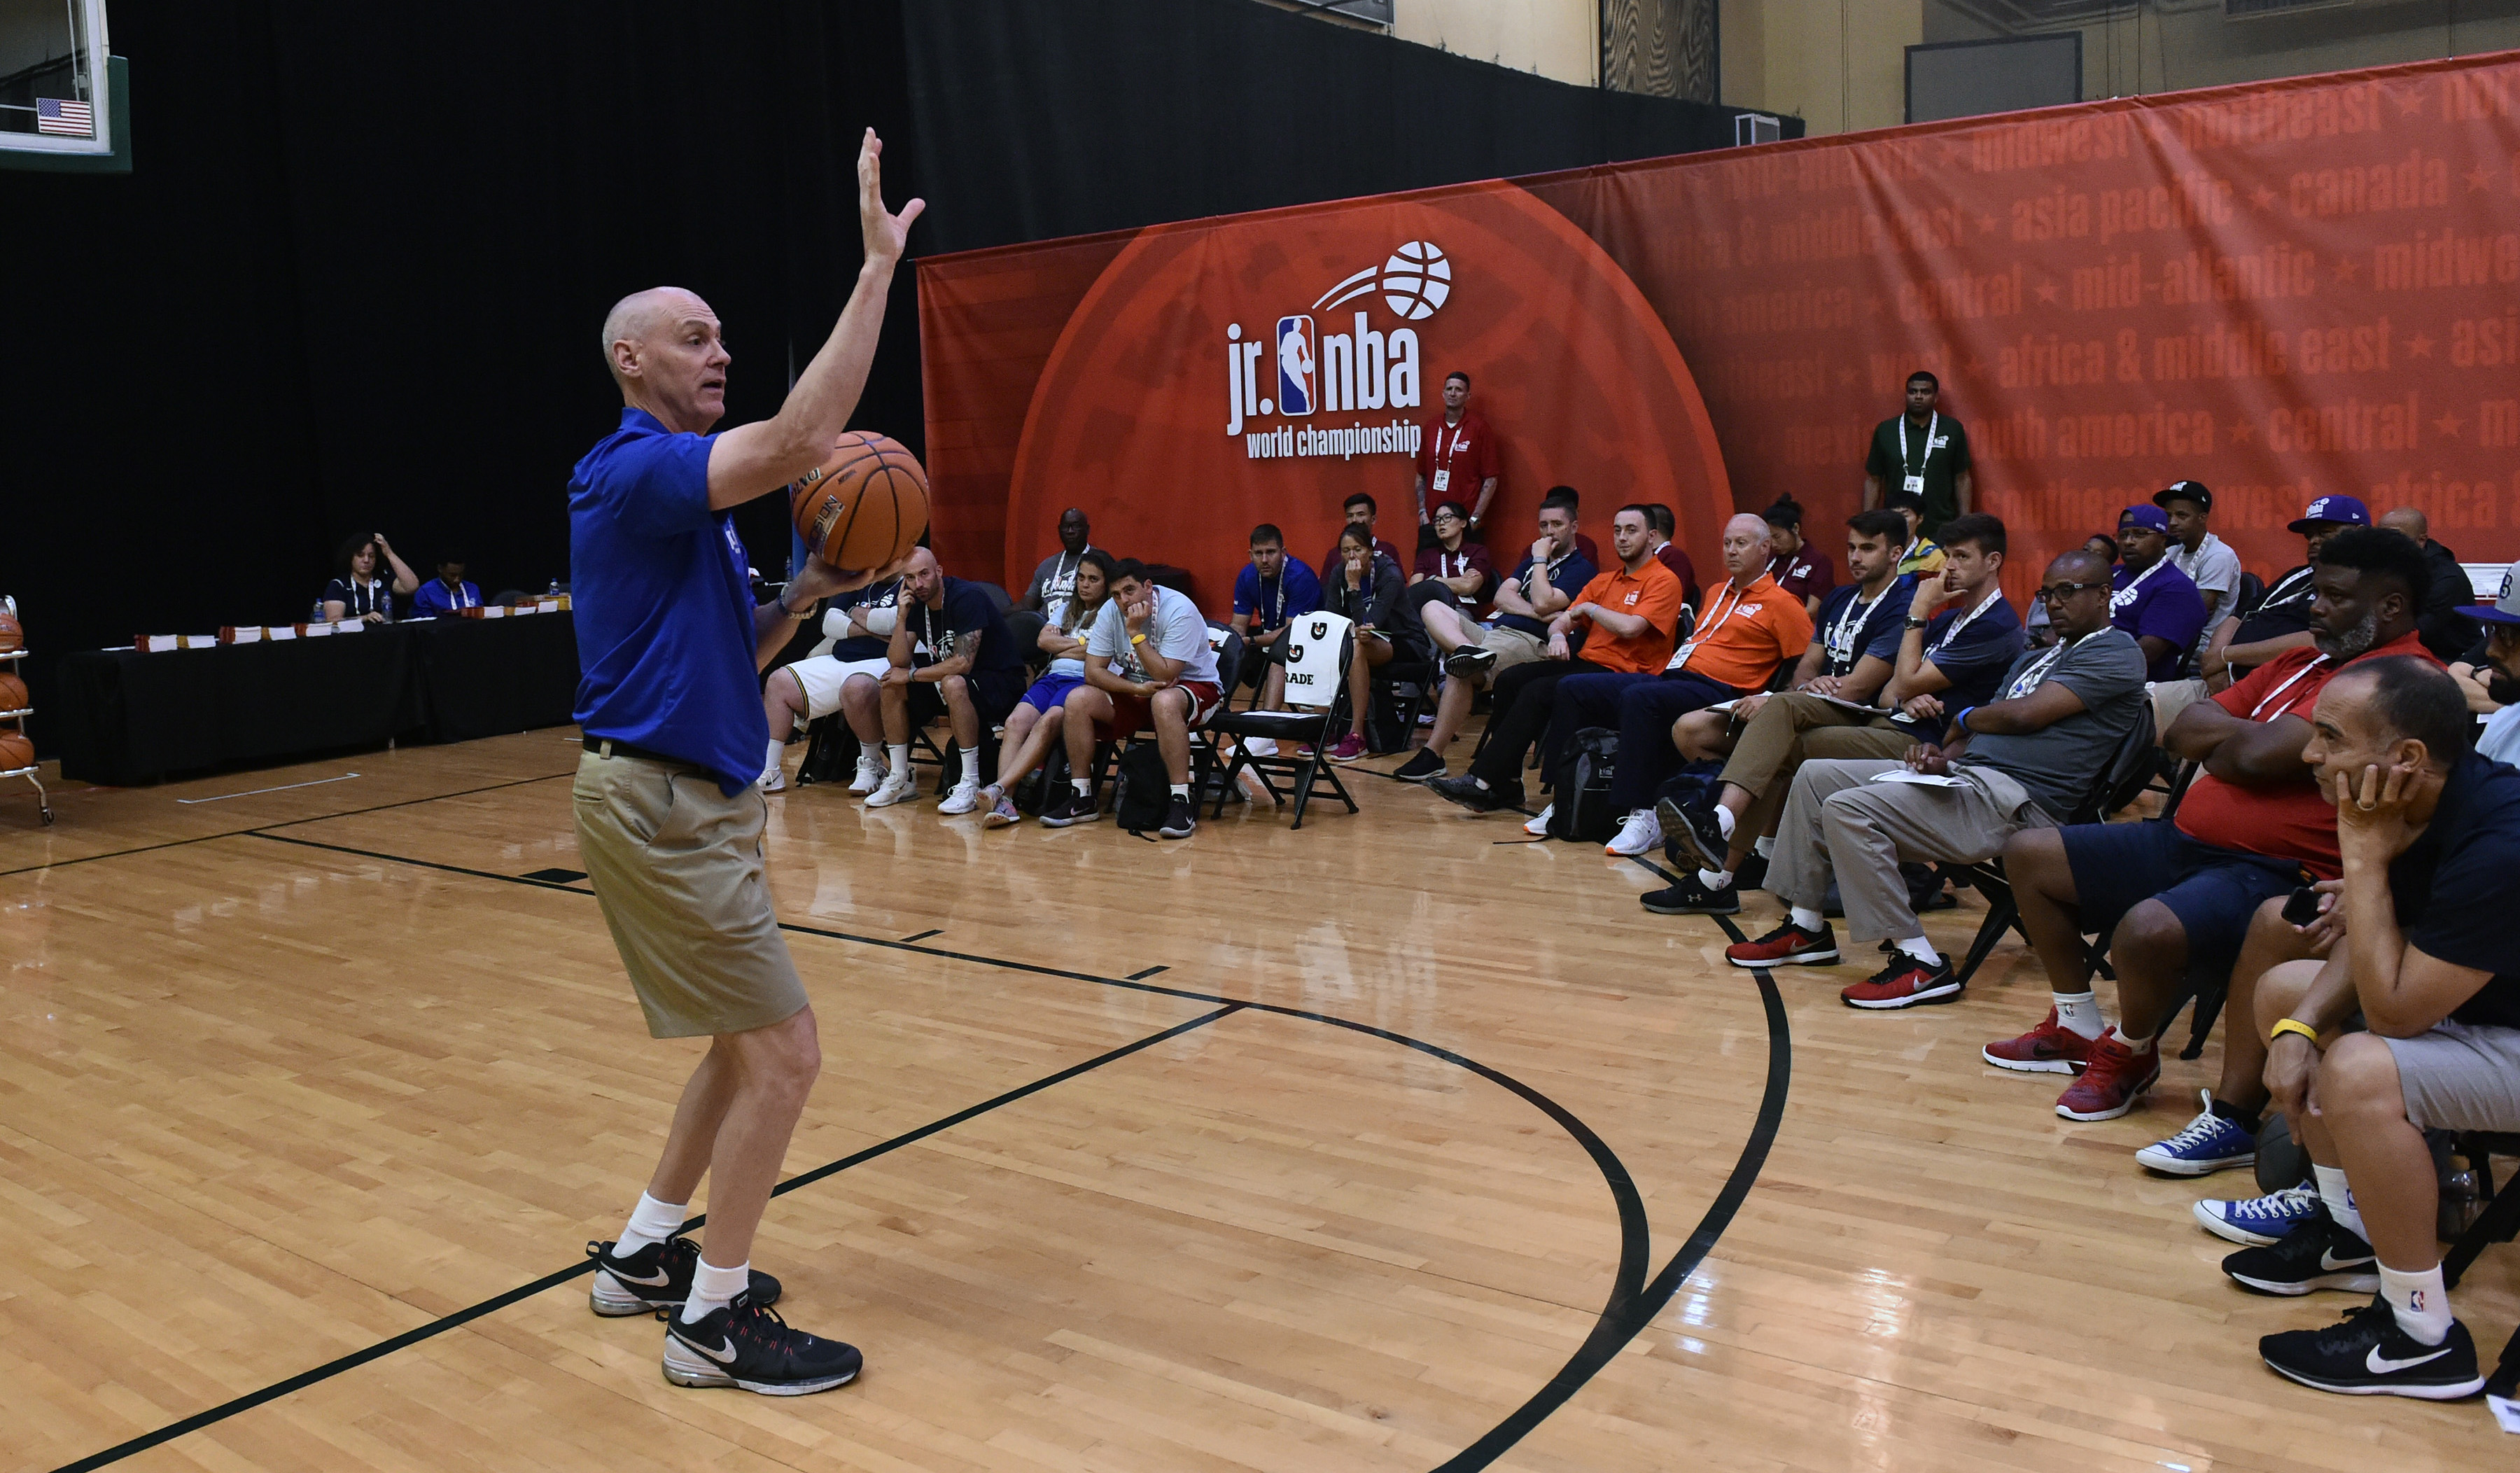 Jr. NBA World Championship Tournament - Coaching Clinic